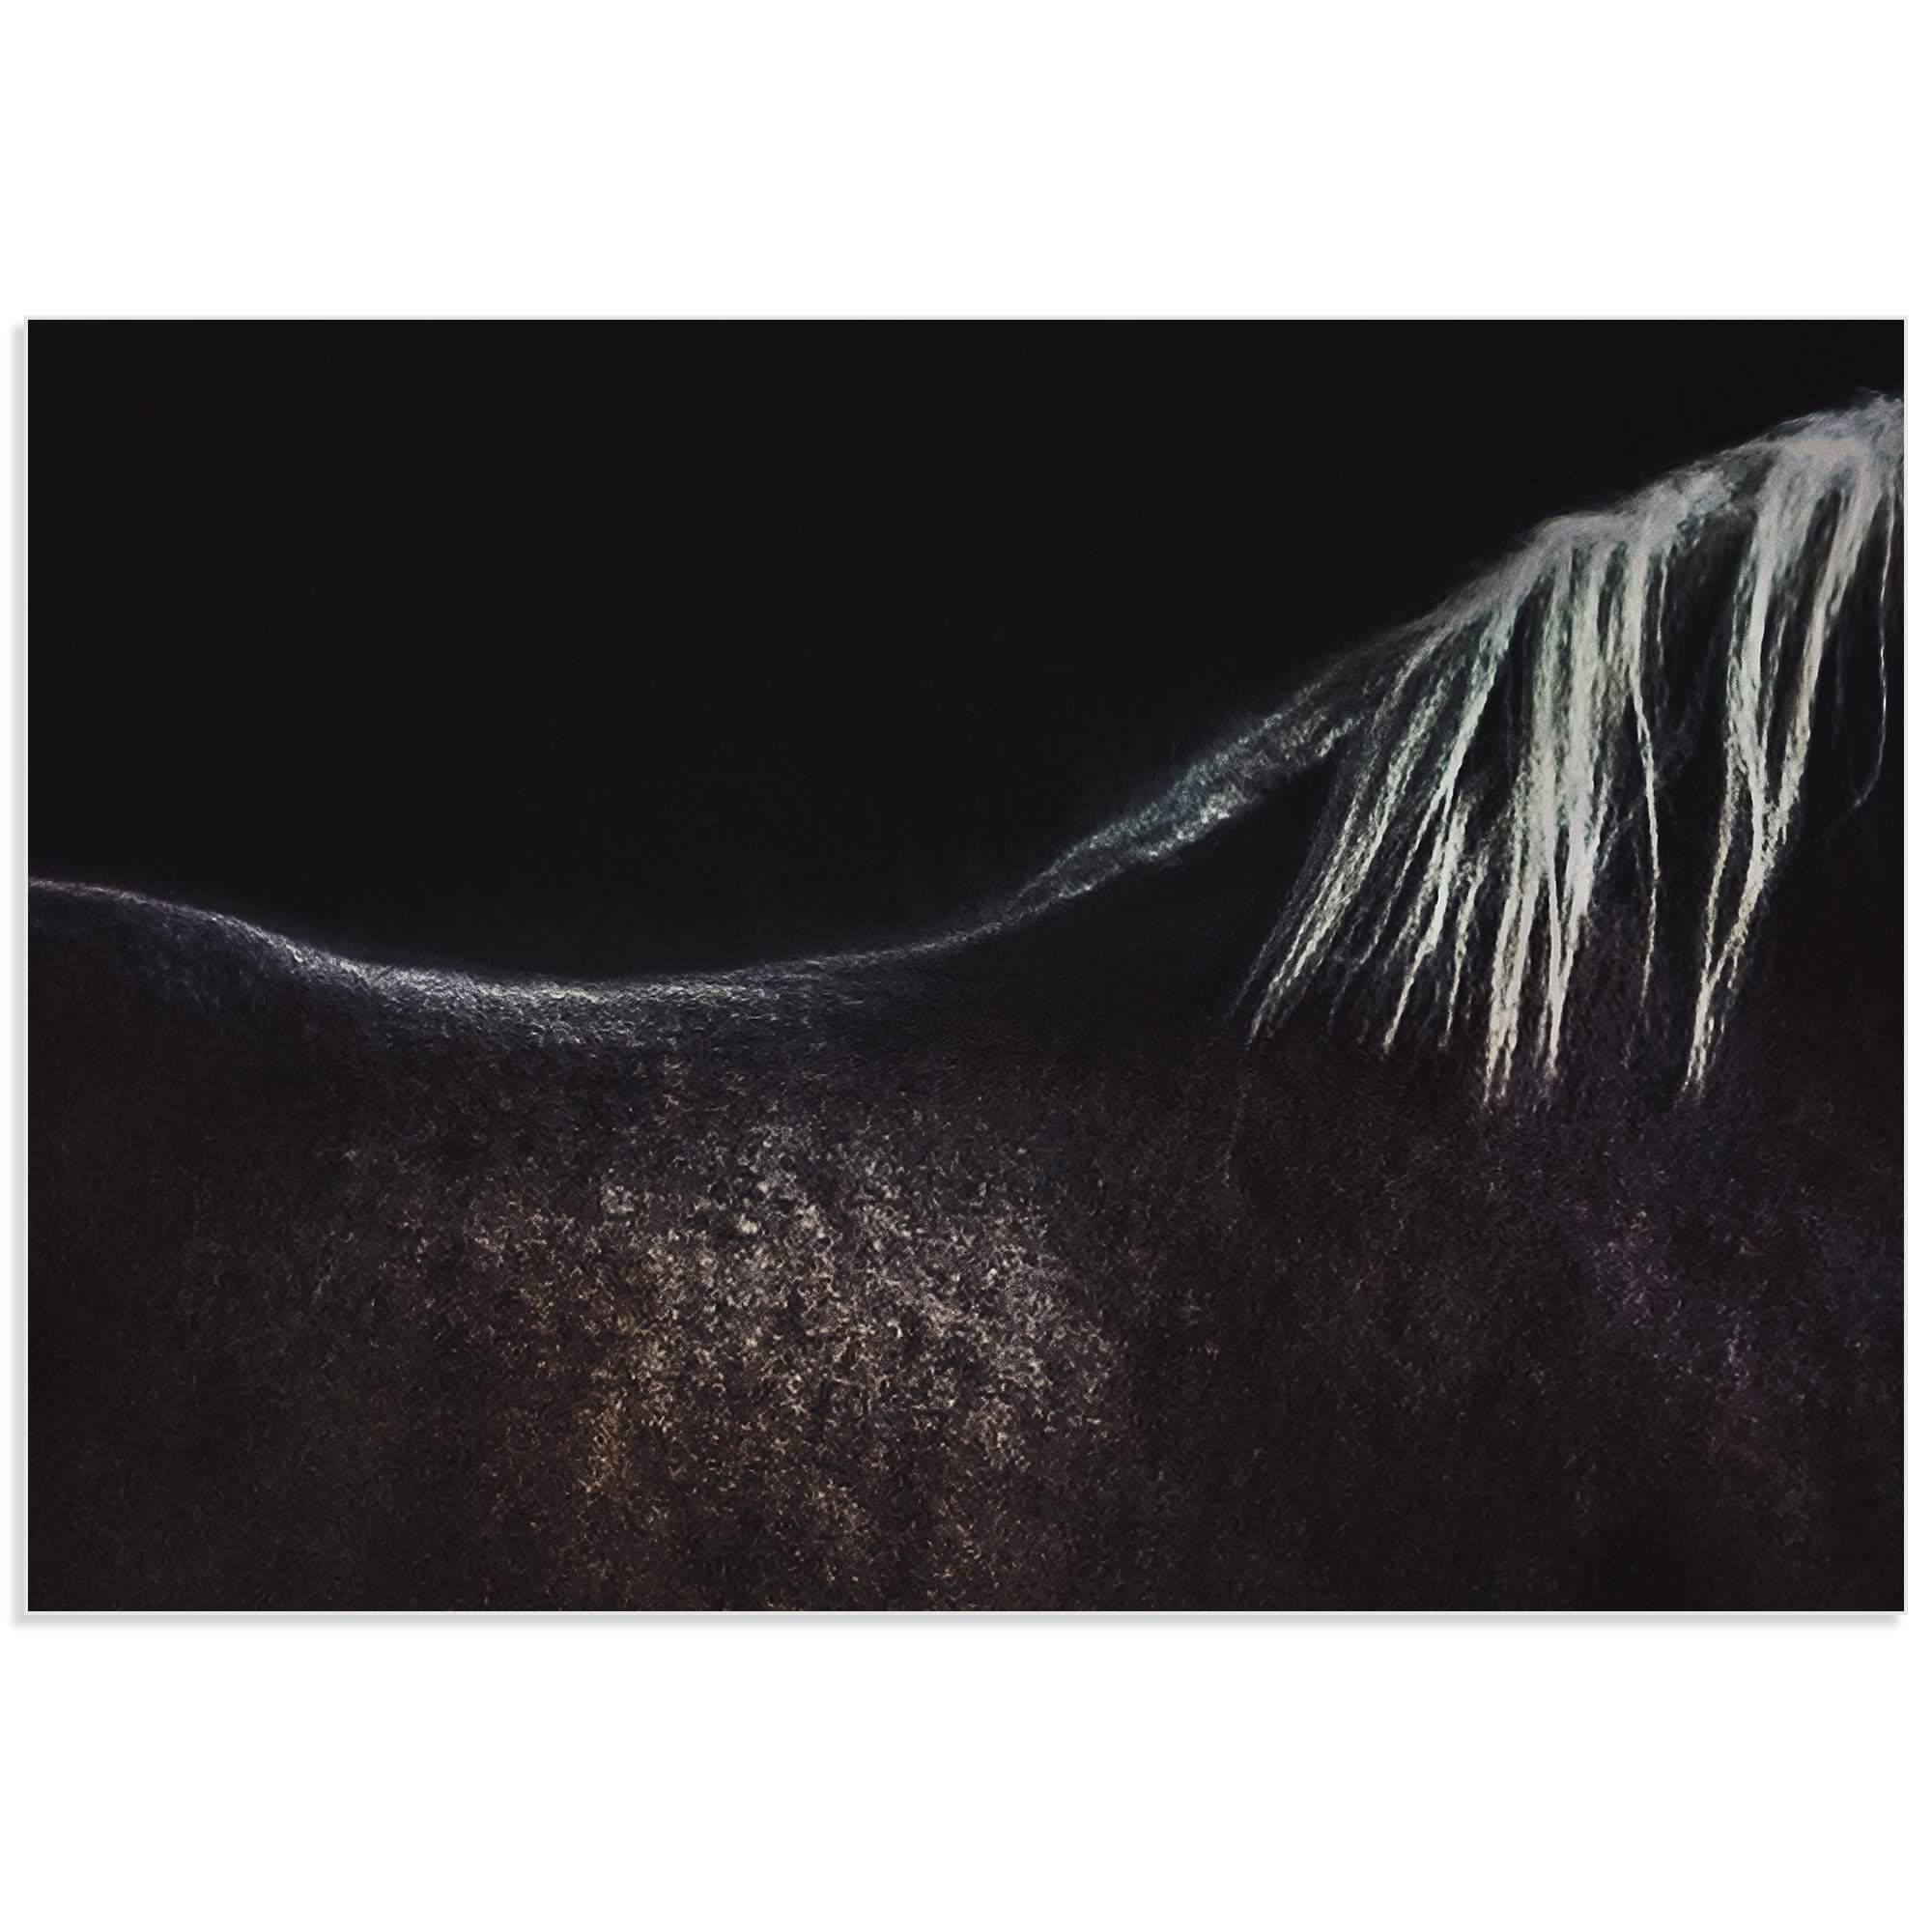 Naked Horse by Piet Flour - Horse Wall Art on Metal or Acrylic - Alternate View 2